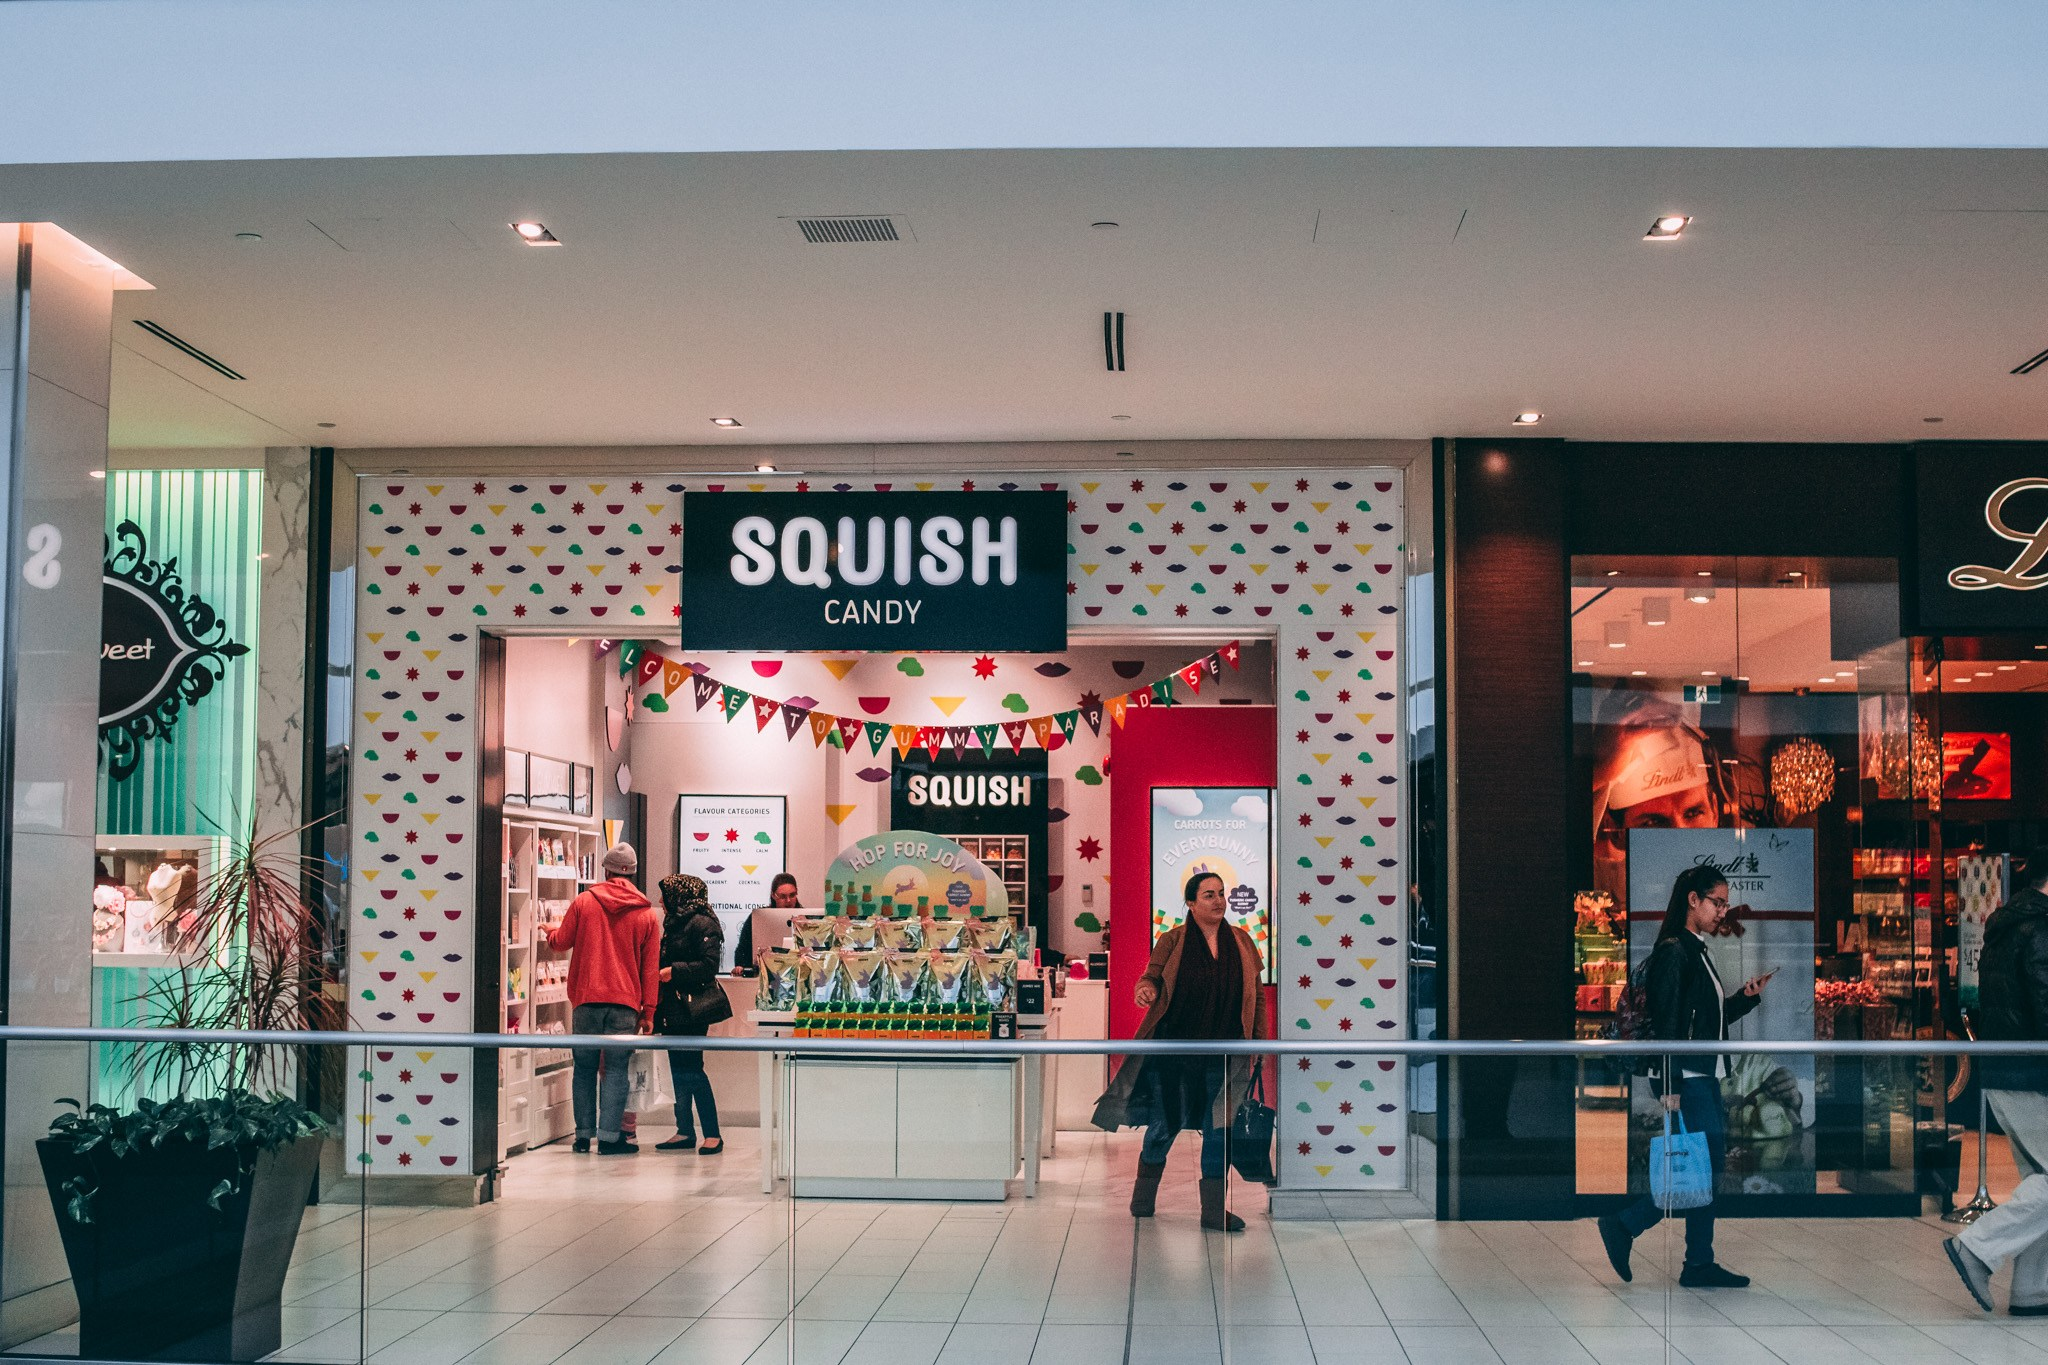 squish STC scarborough town centre